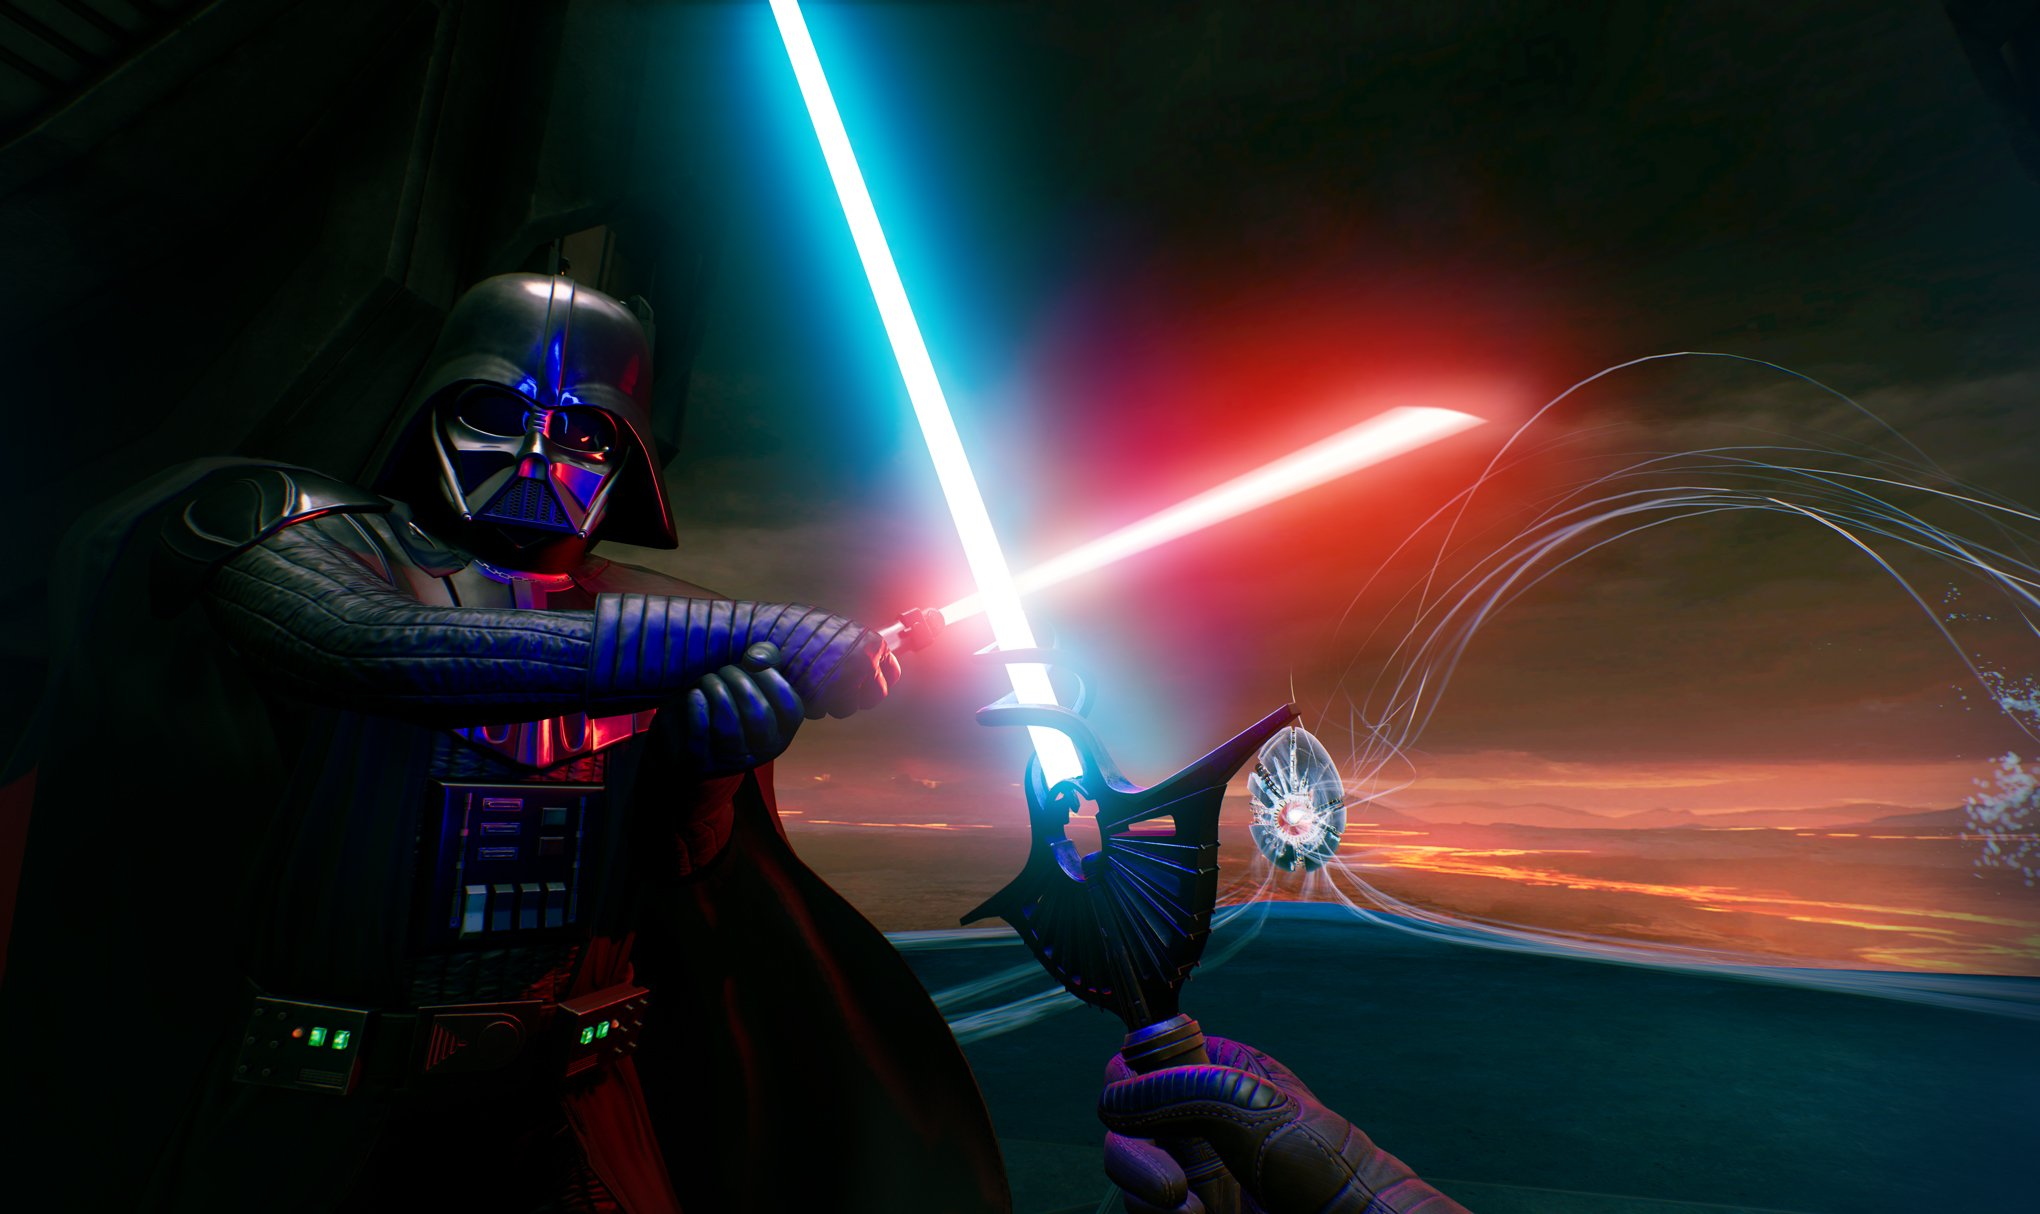 Fighting Darth Vader in Vader Immortal